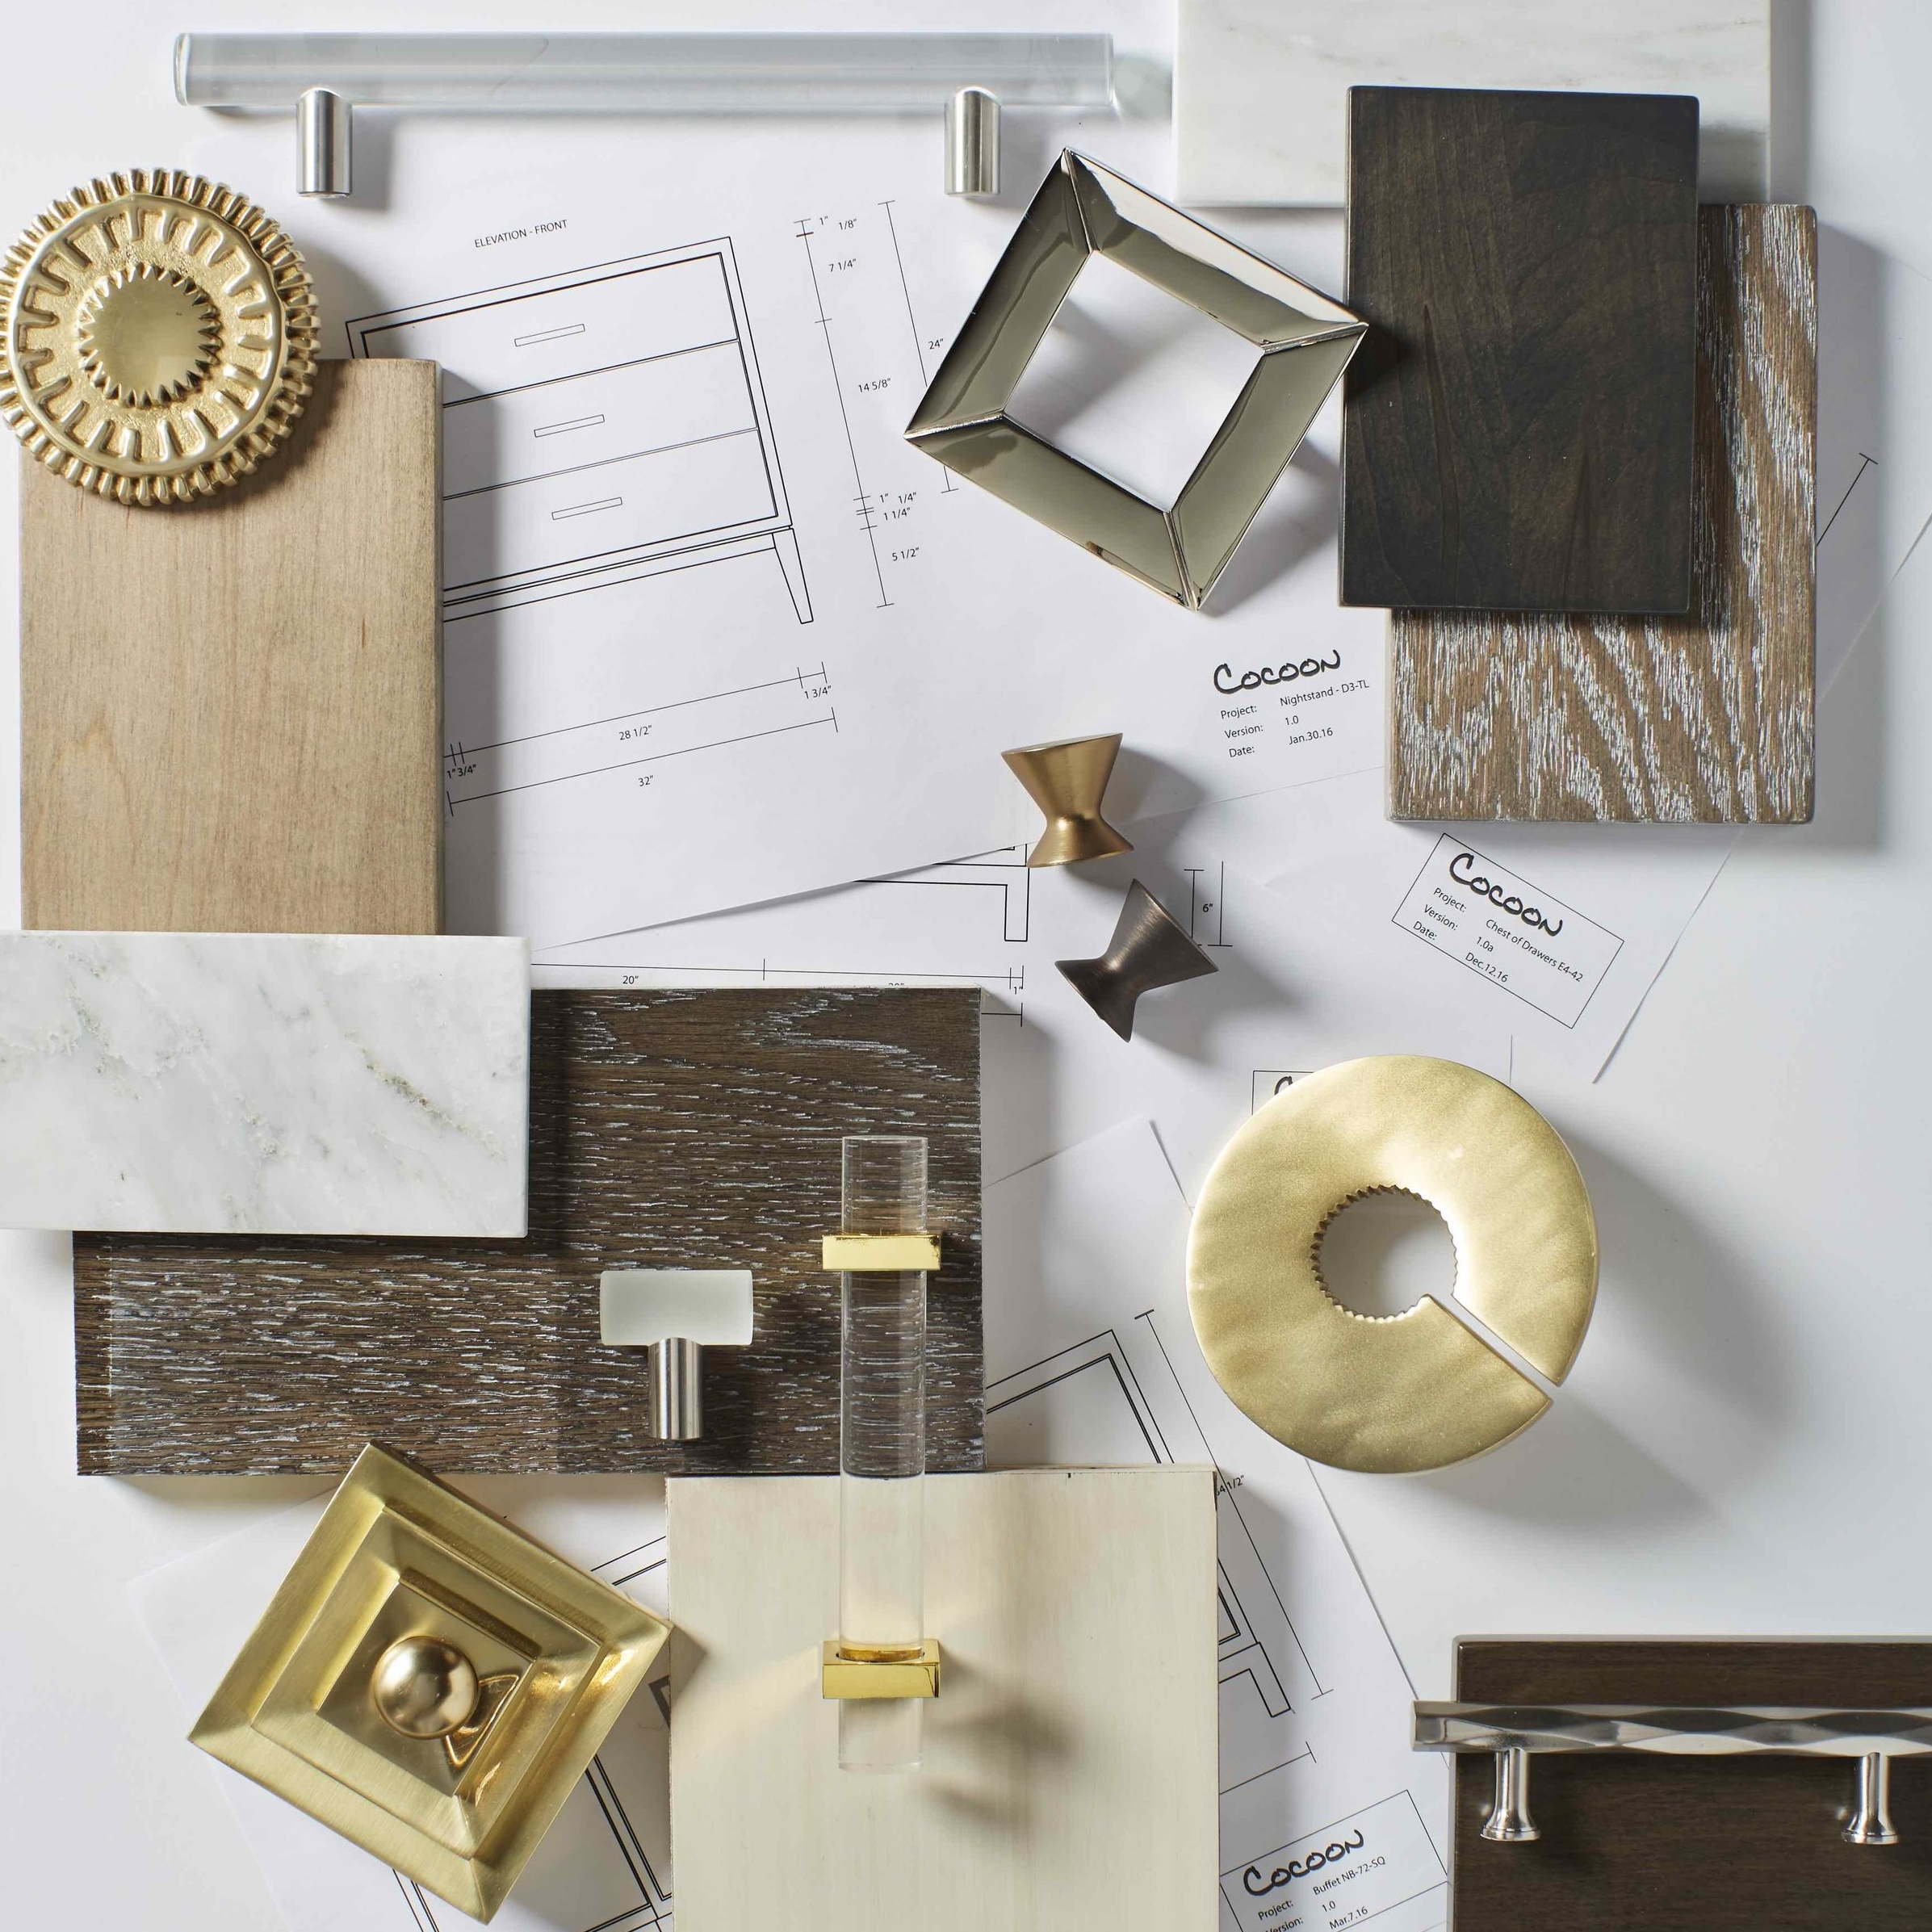 Visit the Cocoon showroom to see wood, finish and hardware samples.